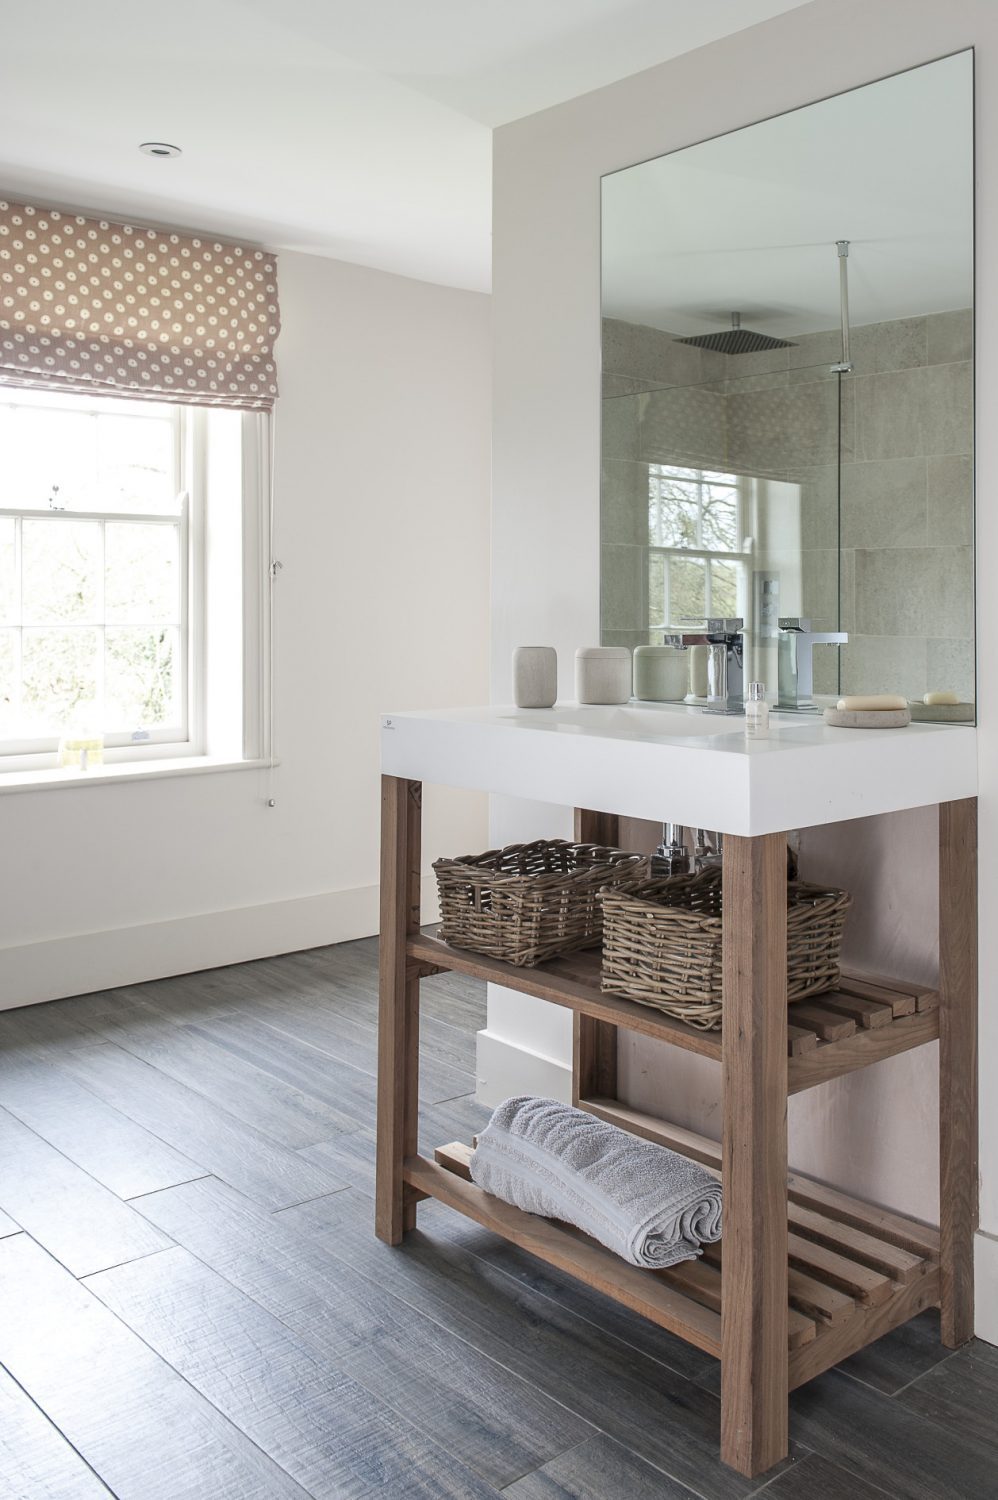 A modern en suite shower room adds a sense of hotel luxury to the spare room